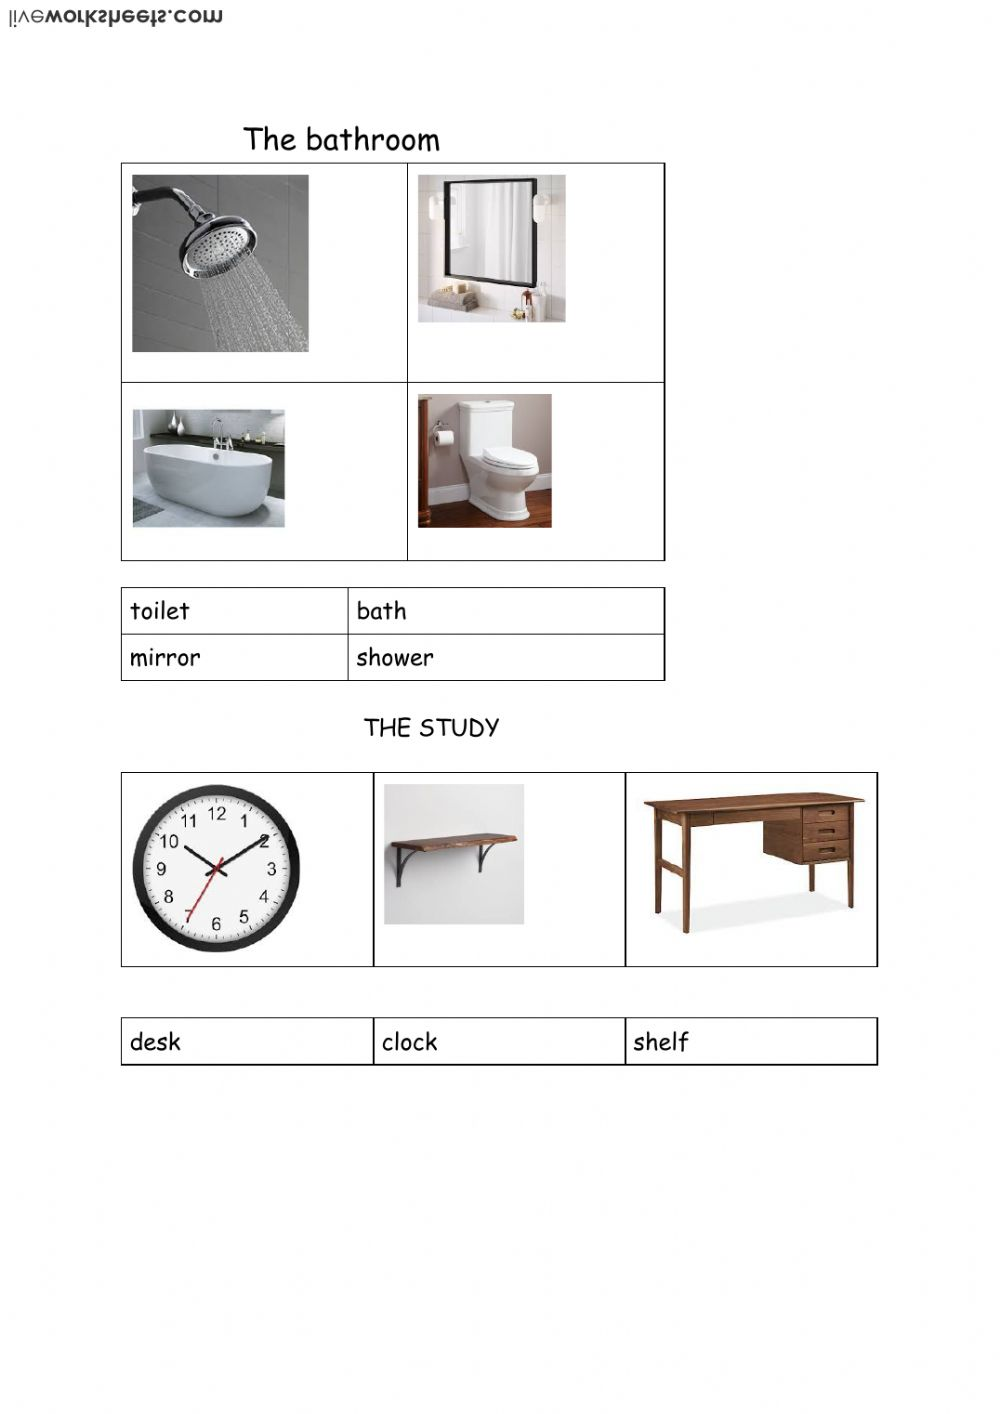 some objects in the bathroom and study - Interactive worksheet